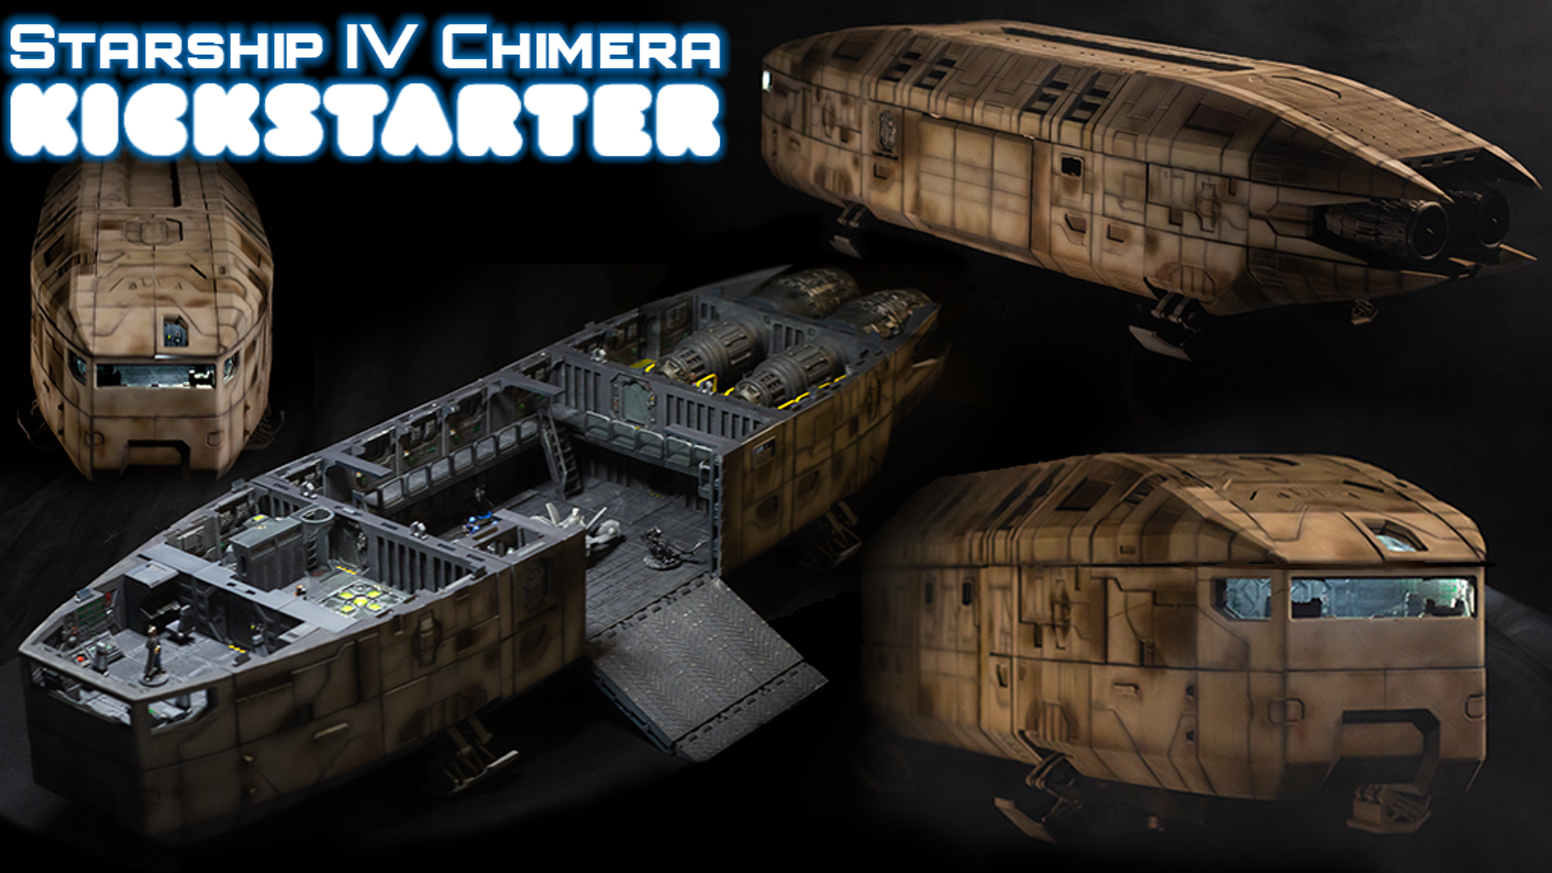 Complete 28mm scale 3D printable spaceship for tabletop play or display, including full OpenLOCK-compatible modular interiors